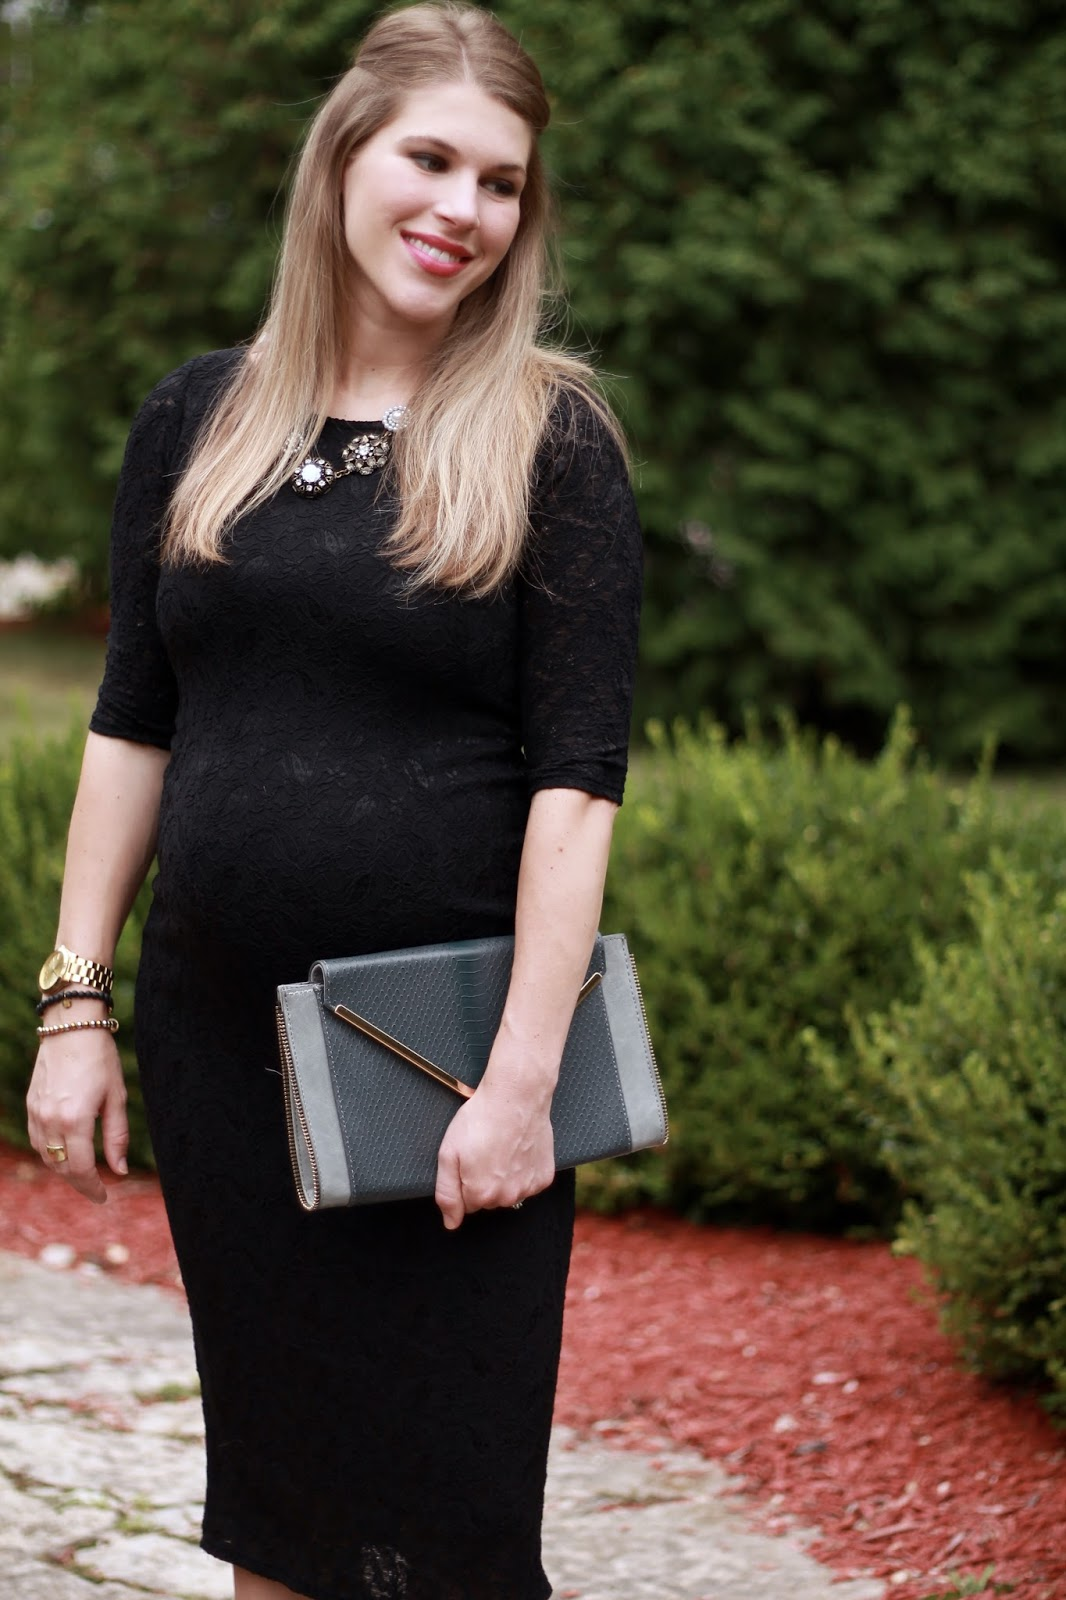 black lace maternity dress, green heels, grey clutch, vintage necklace, maternity wedding look